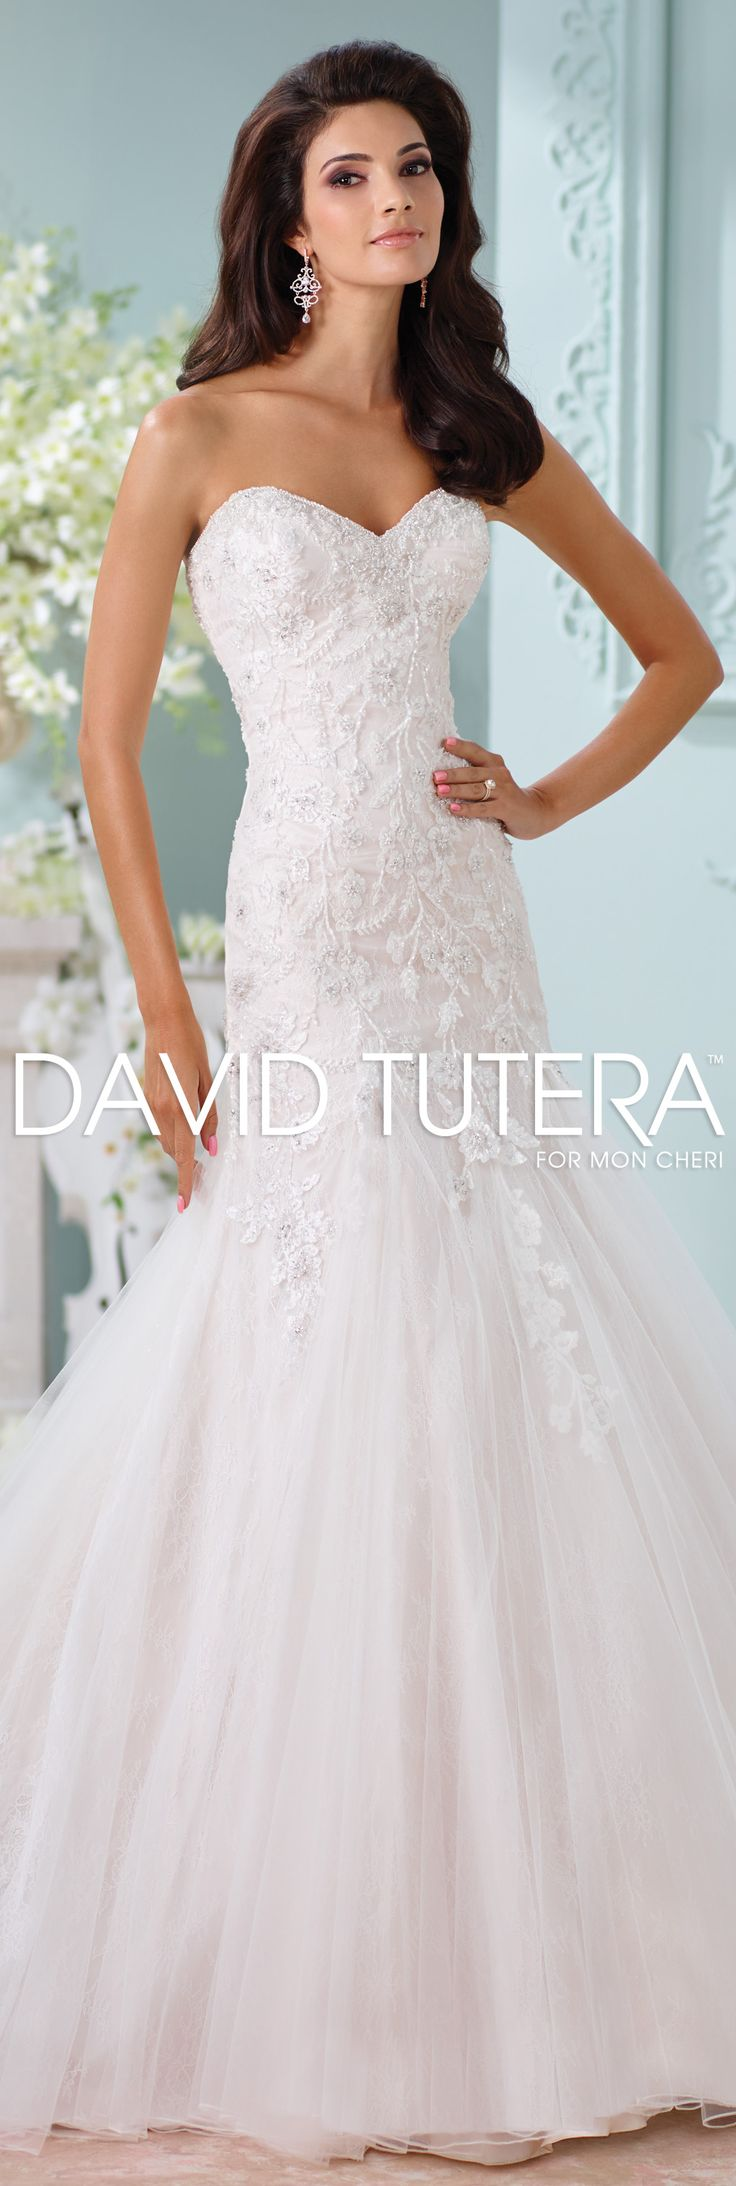 Top 25 ideas about wedding bliss on pinterest dress for David tutera wedding jewelry collection